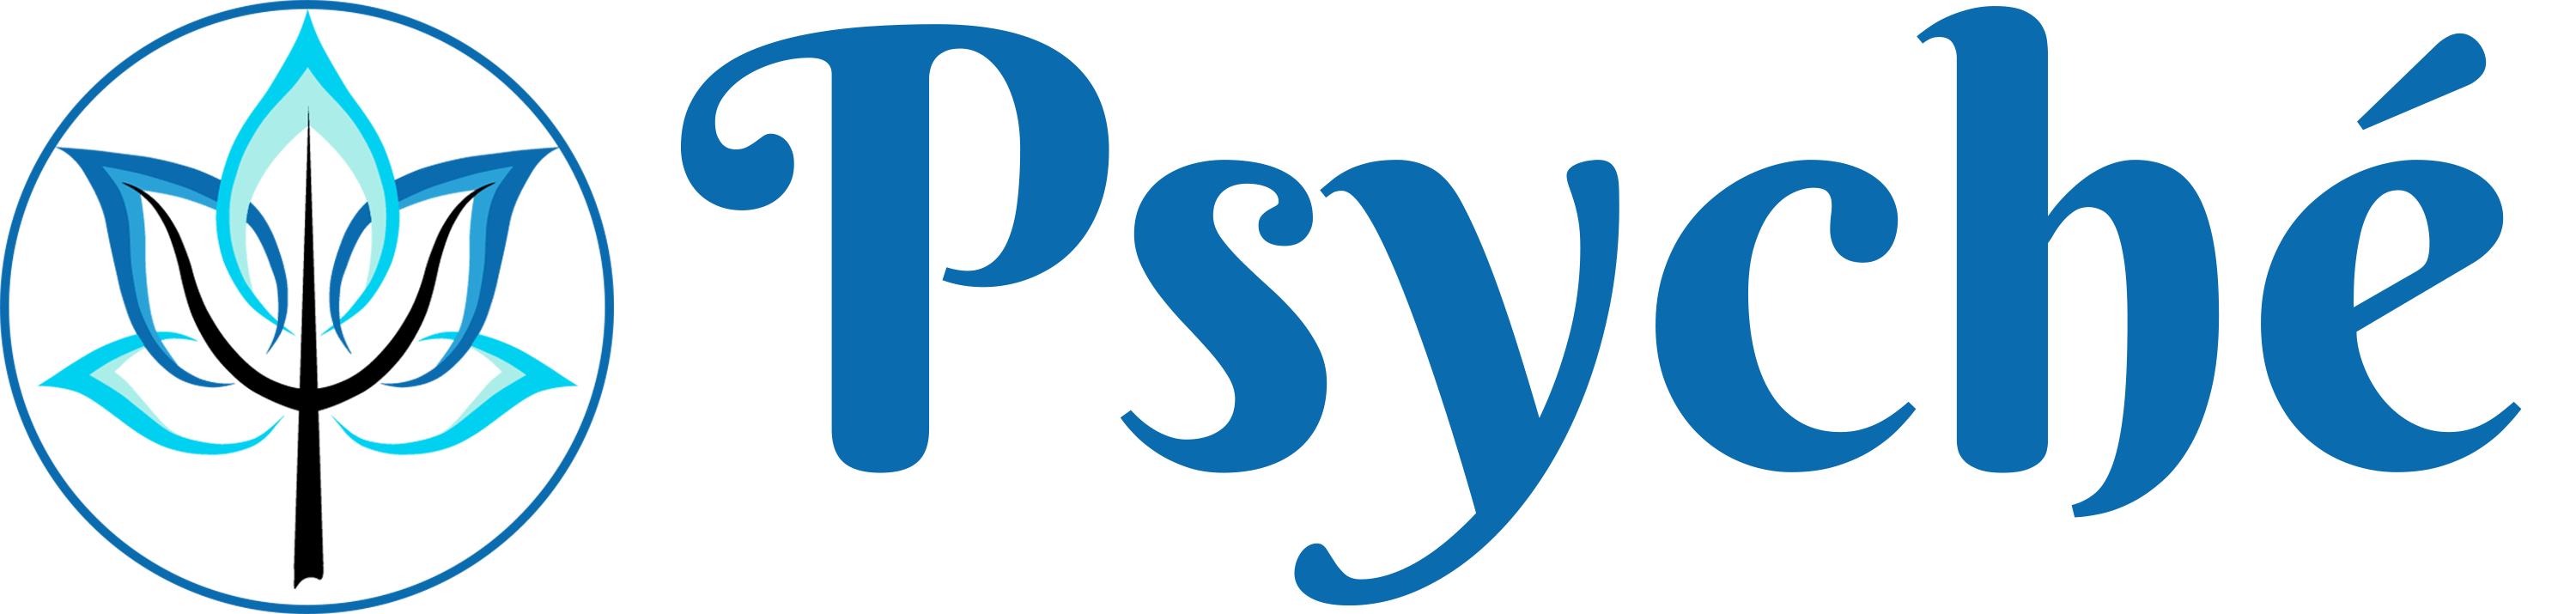 referencie-wooacademy-psyche